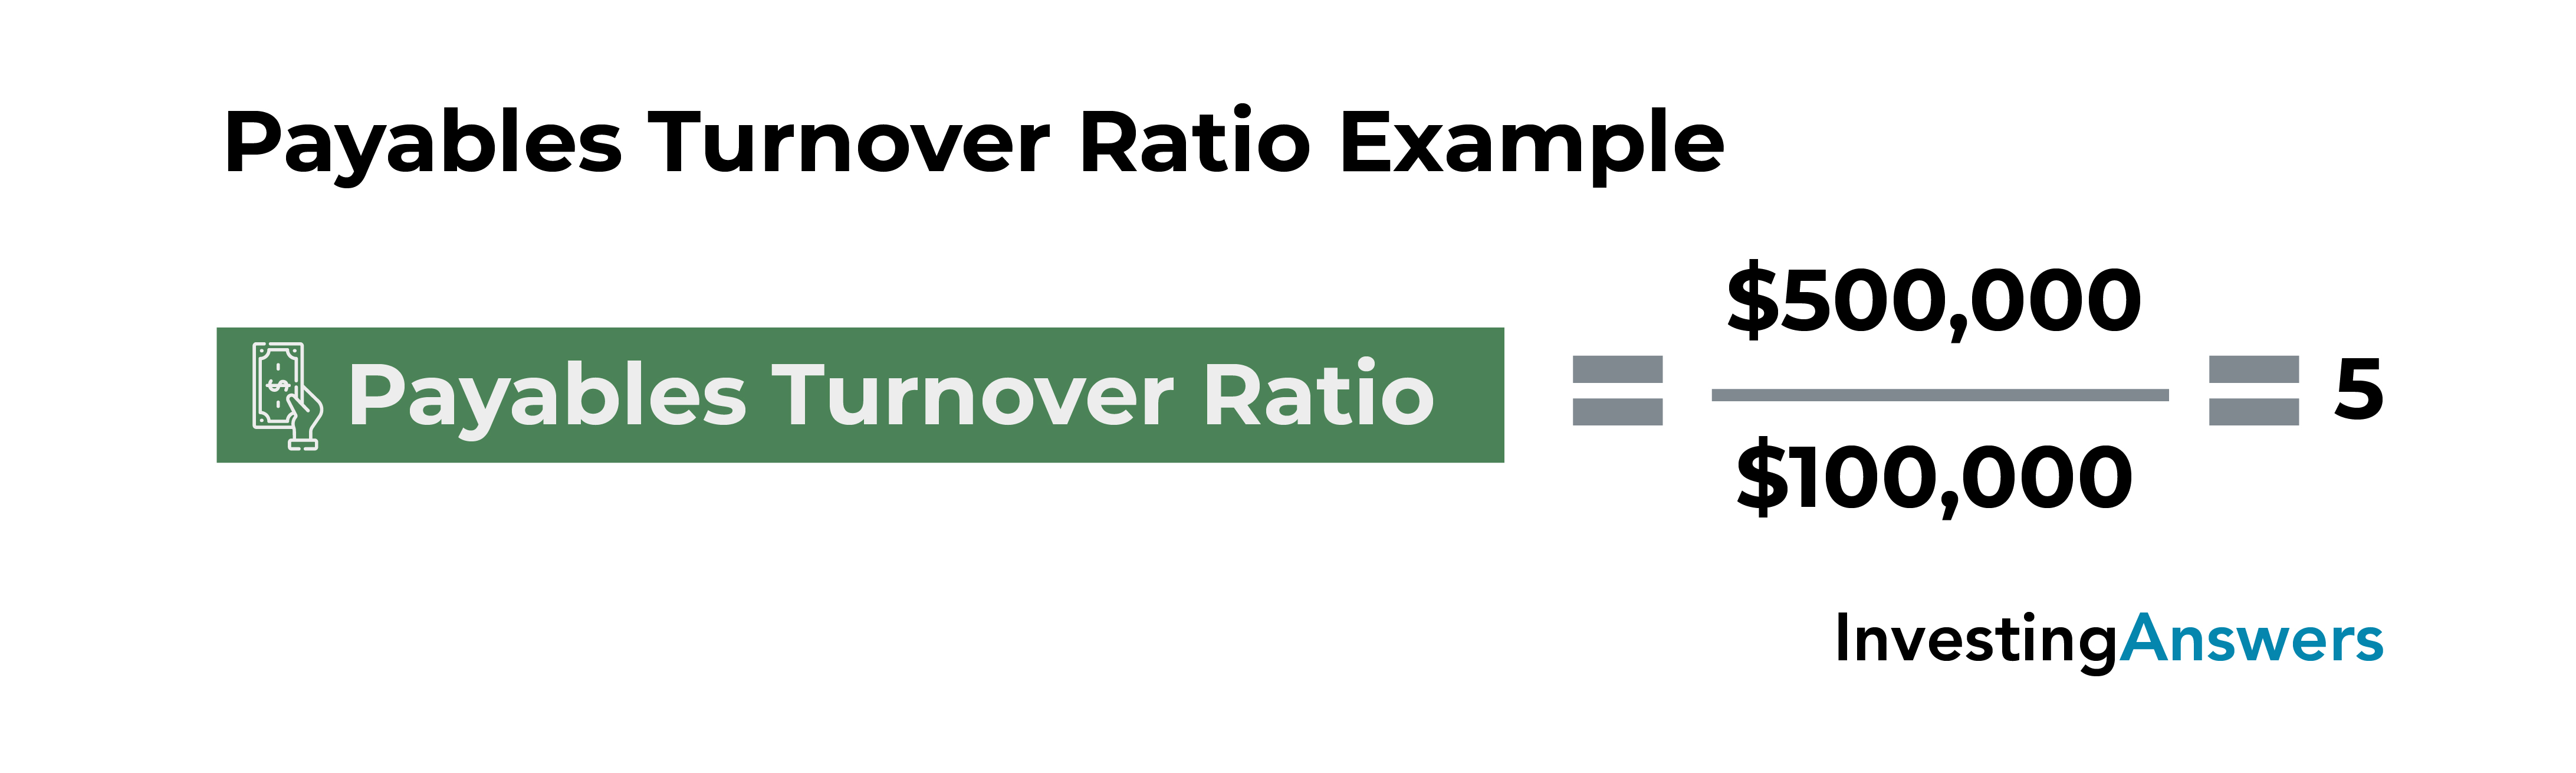 payables turnover ratio example